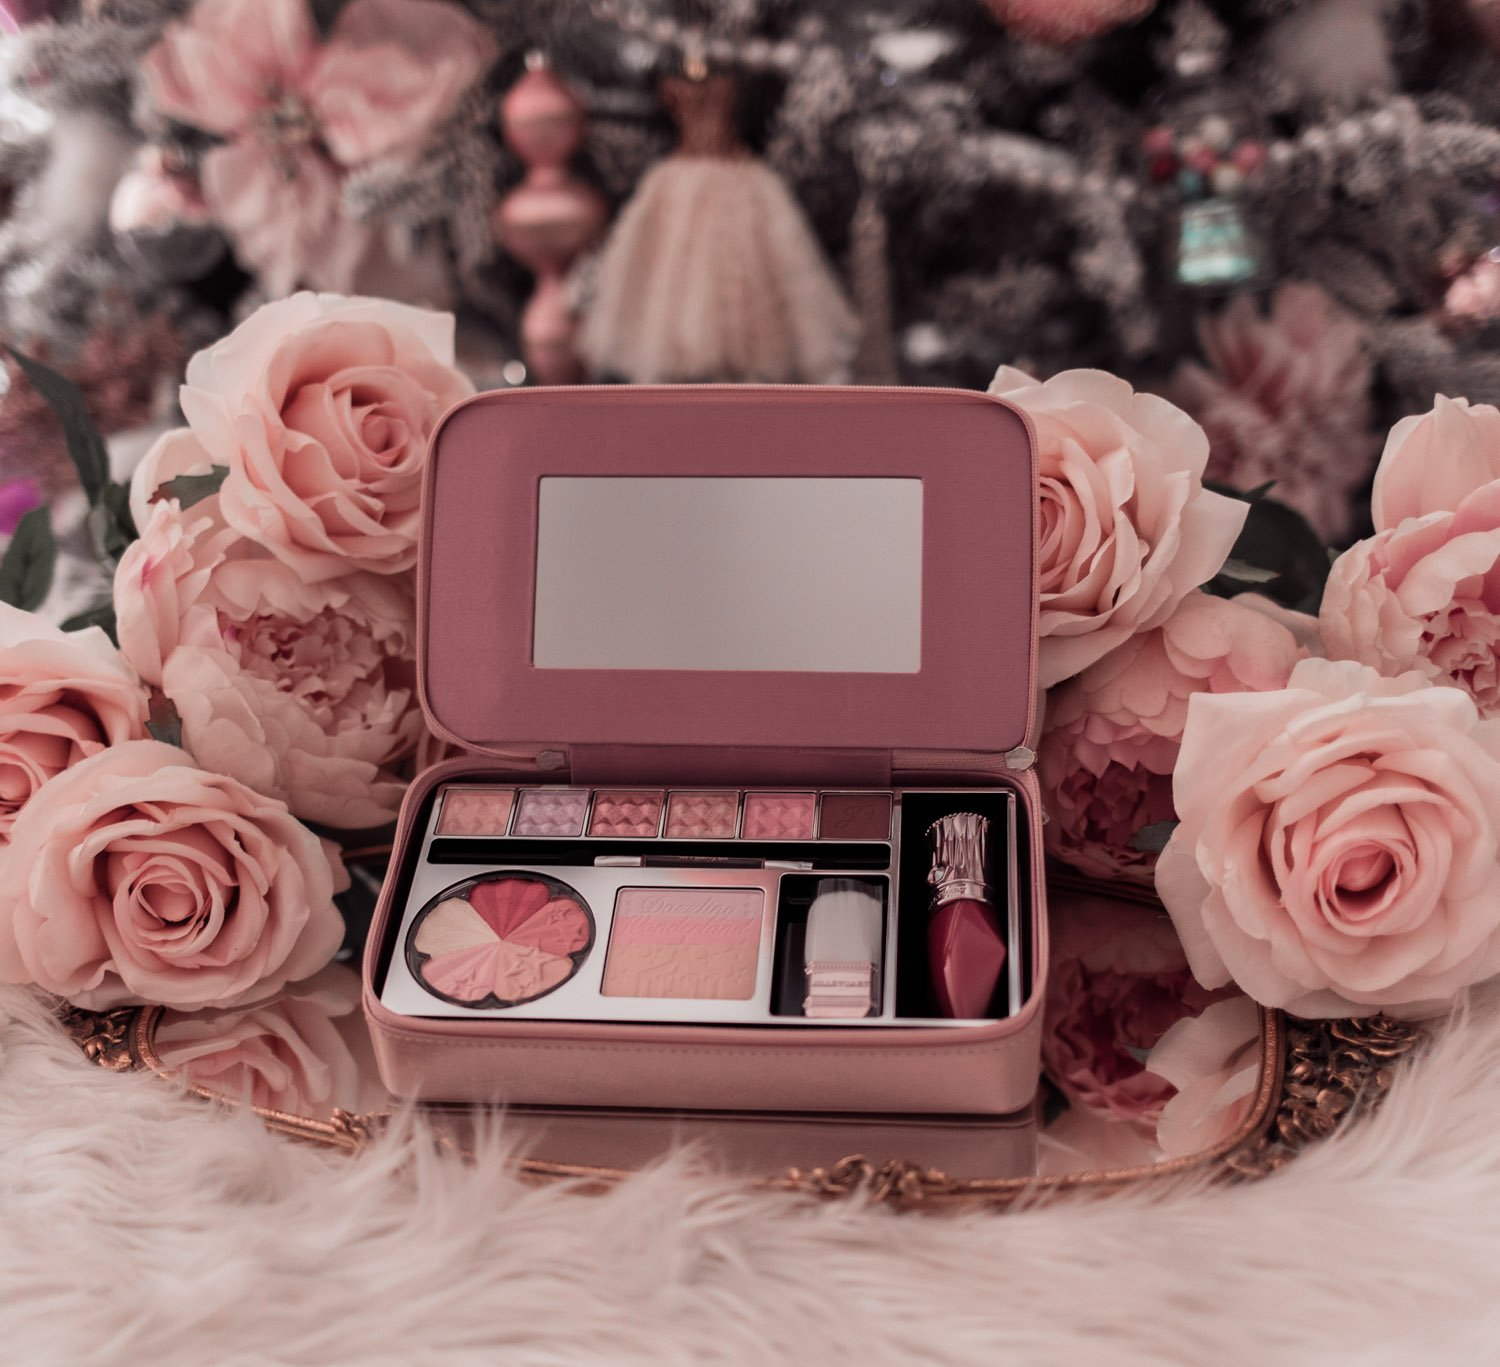 Fashion Blogger Elizabeth Hugen of Lizzie in Lace shares holiday beauty gifts to gift yourself including this adorable Jill Stuart Beauty Dazzling Wonderland set